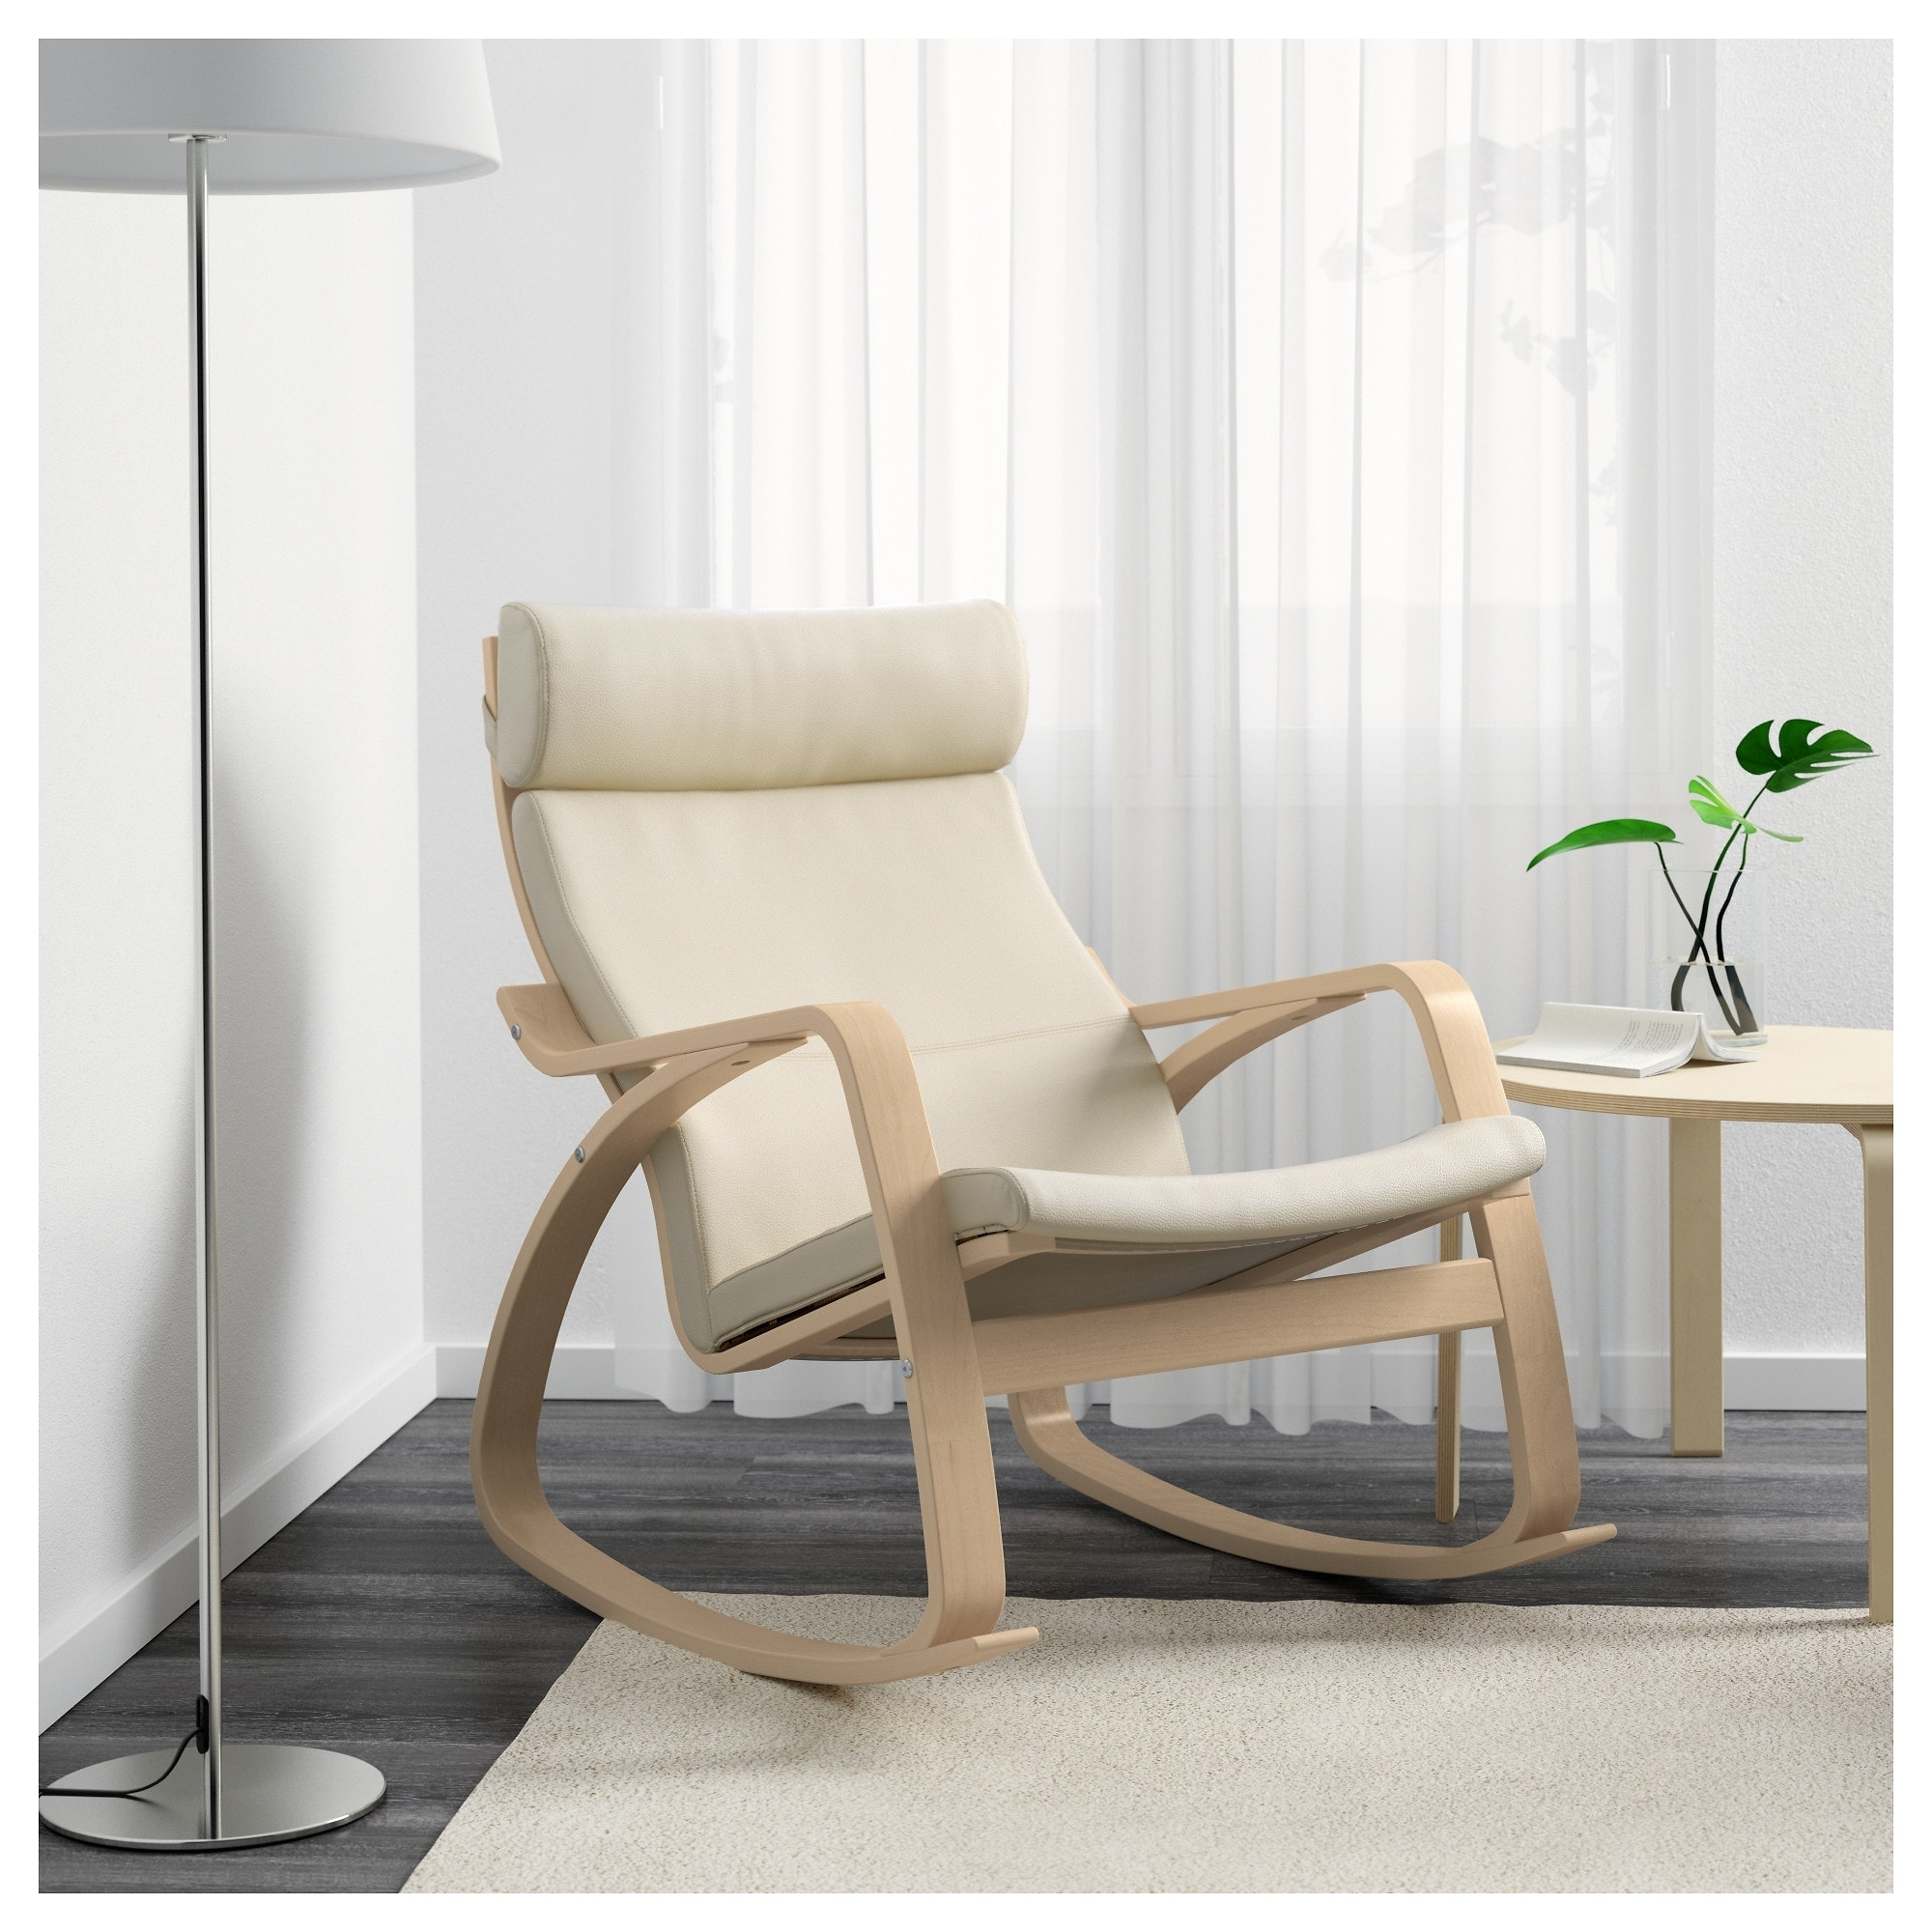 Poäng Rocking Chair Birch Veneer/glose Eggshell – Ikea With Regard To Most Recently Released Rocking Chairs For Adults (View 7 of 15)